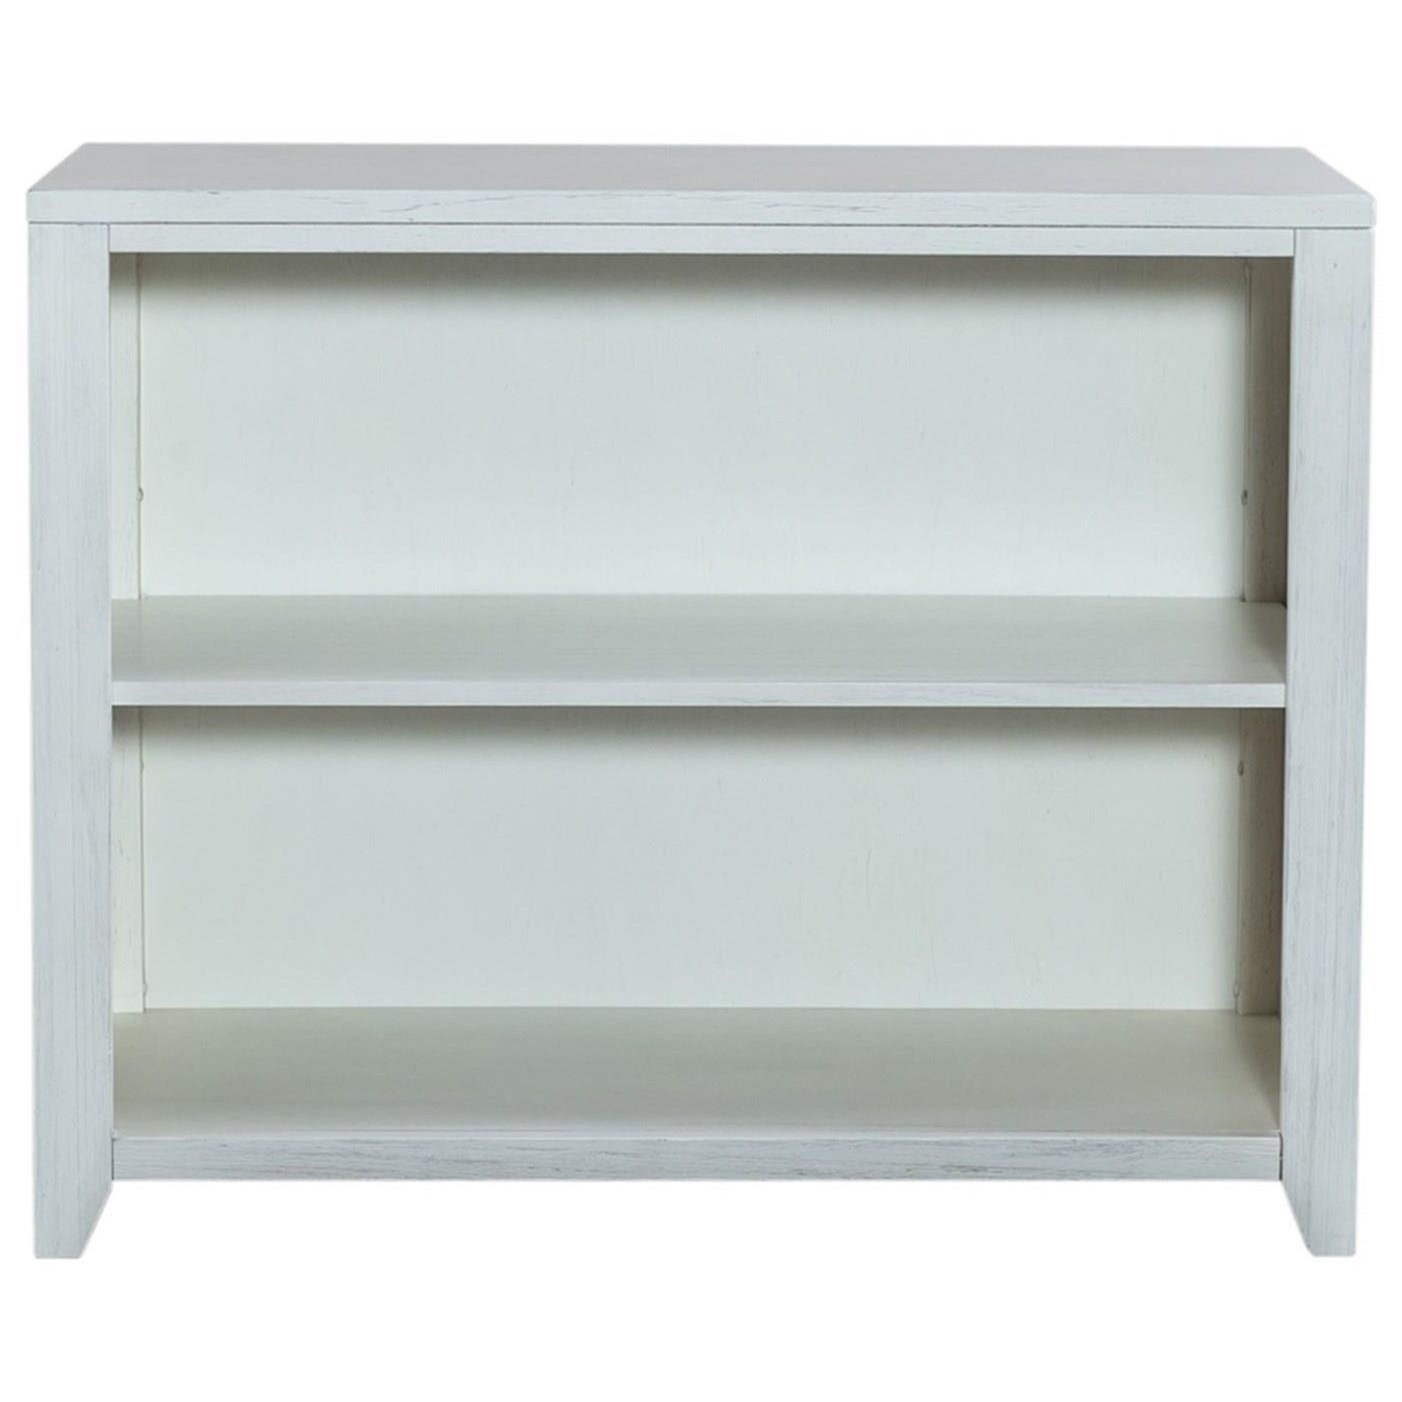 Allyson Park Open Bookcase by Liberty Furniture at Van Hill Furniture